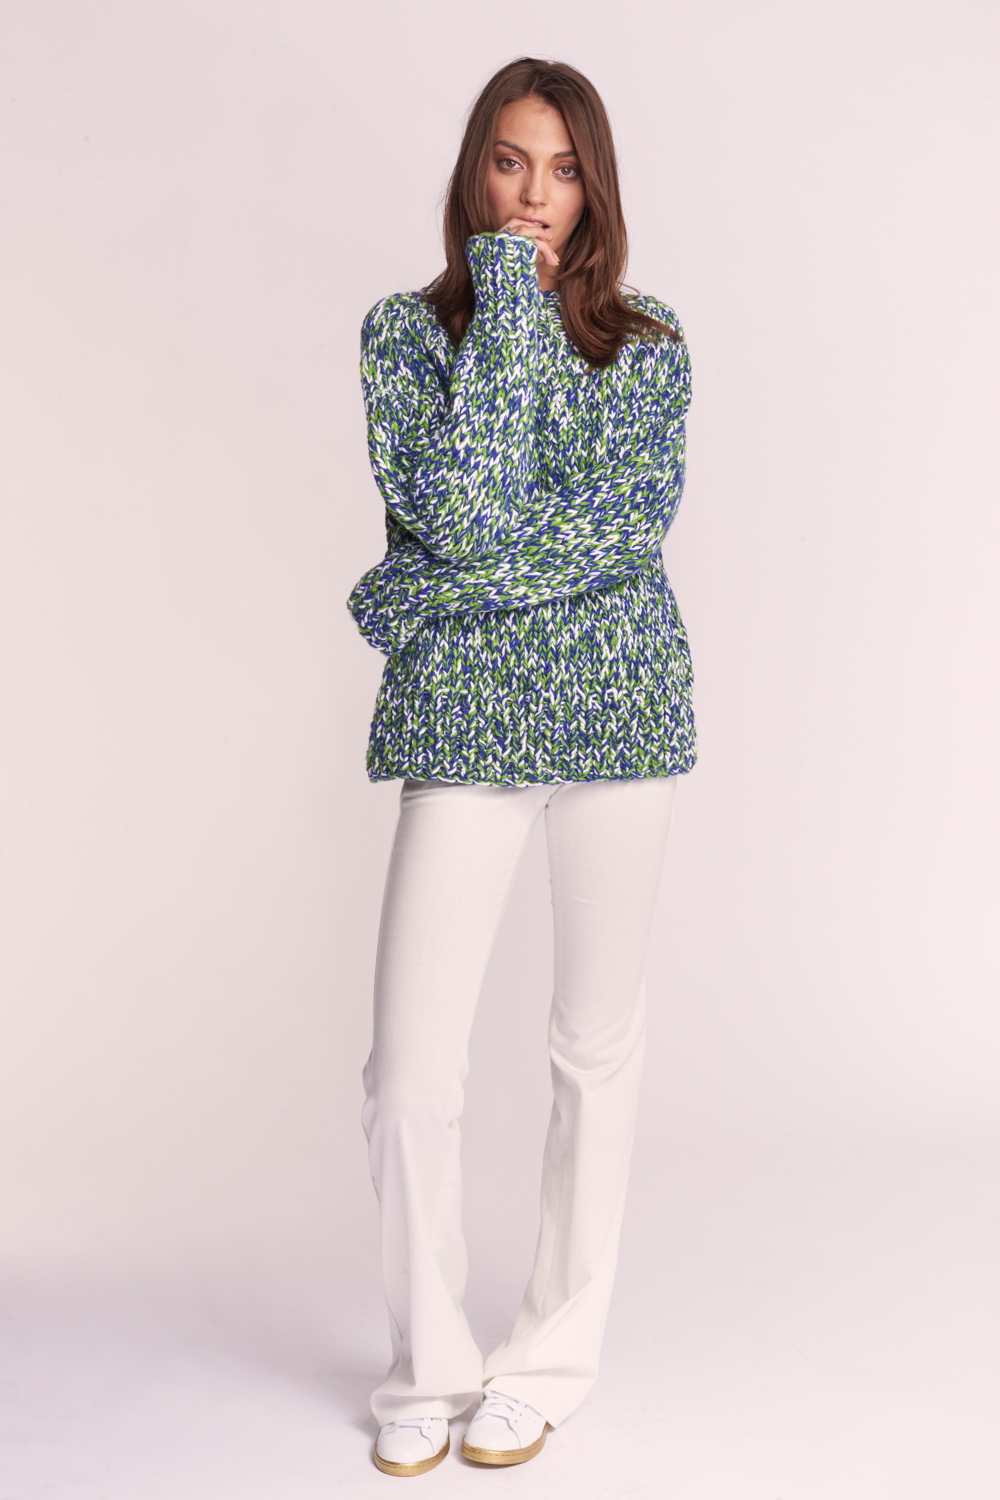 SV-RESORT 2016- LOOK 4.jpg